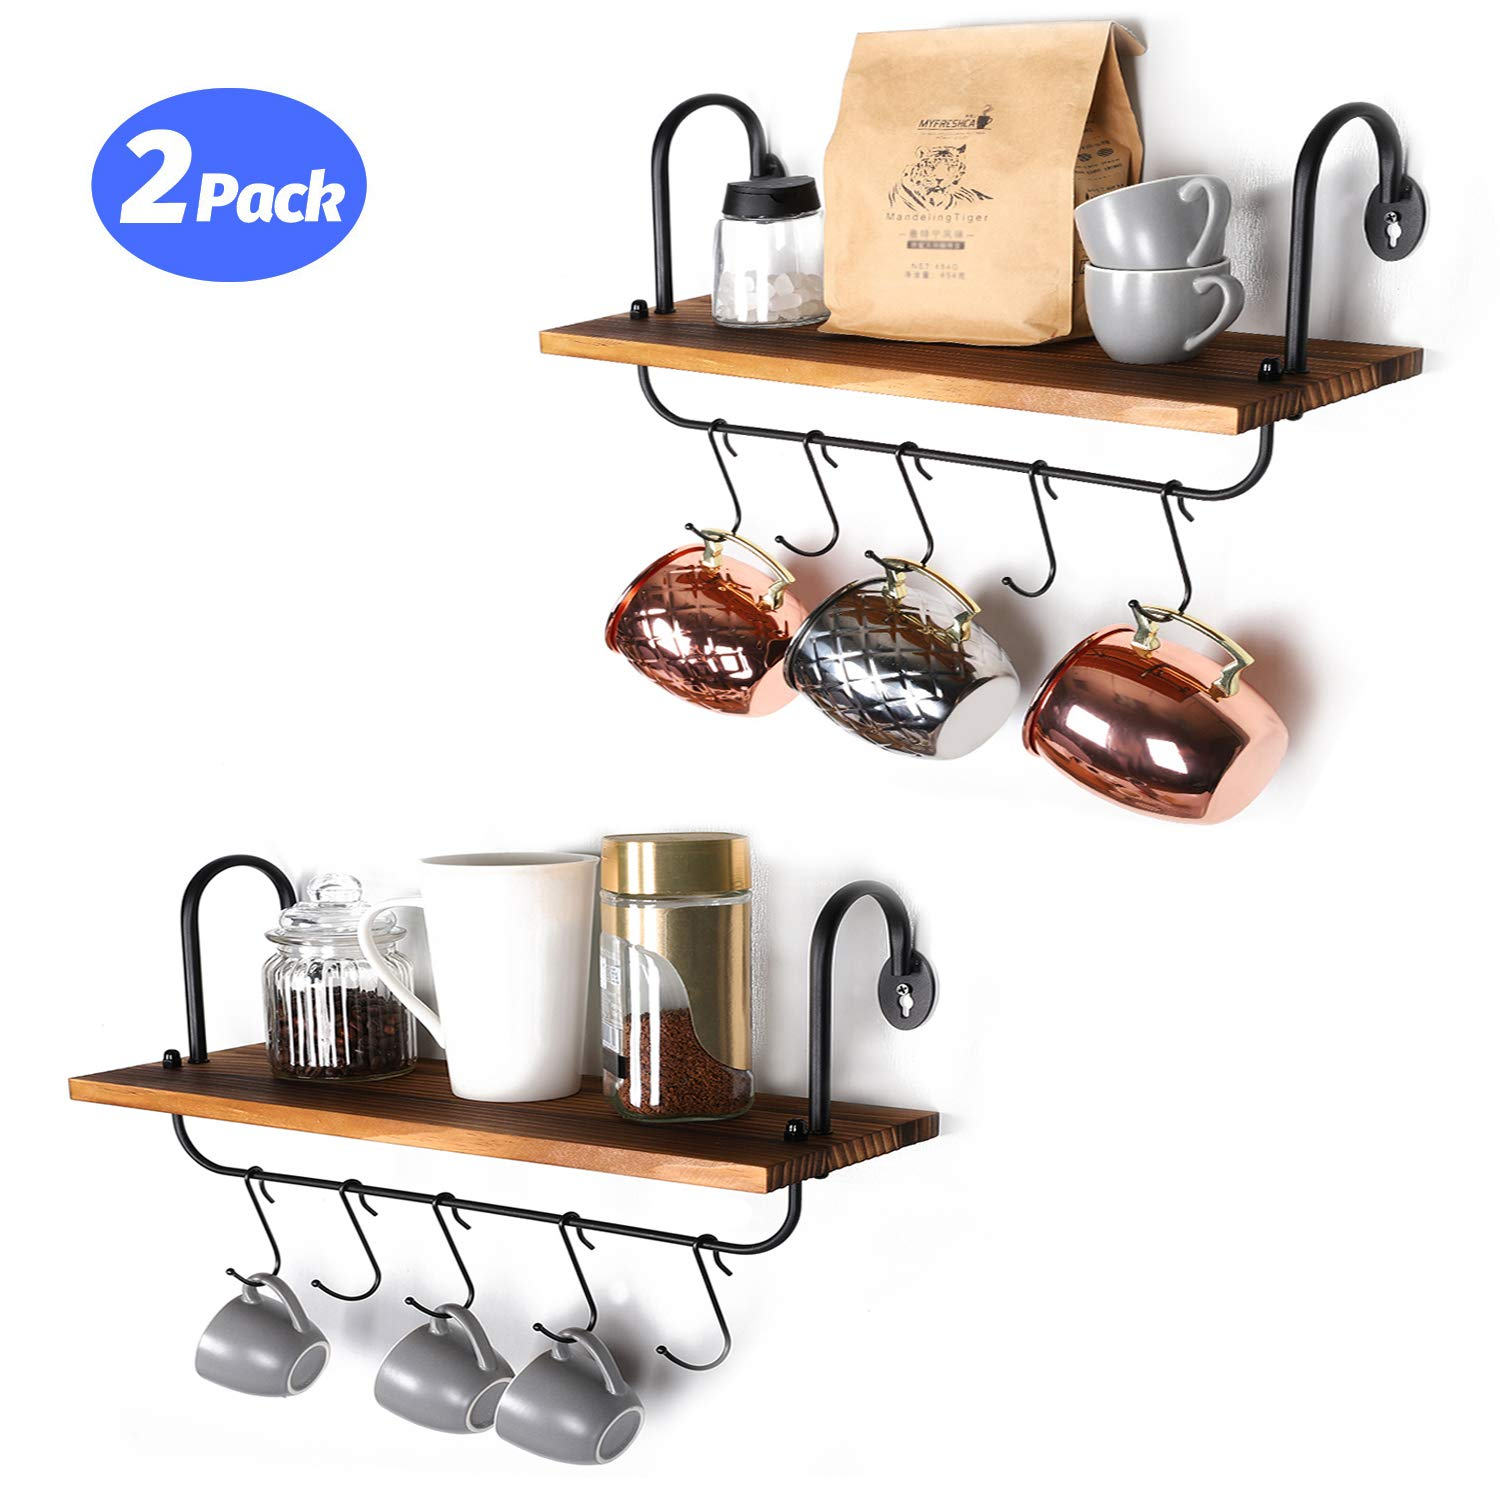 Olakee Wall Shelves with 10 Adjustable Hooks for Mugs Cooking Utensils or Towel at Kitchen Bathroom Coffee Nook Set of 2